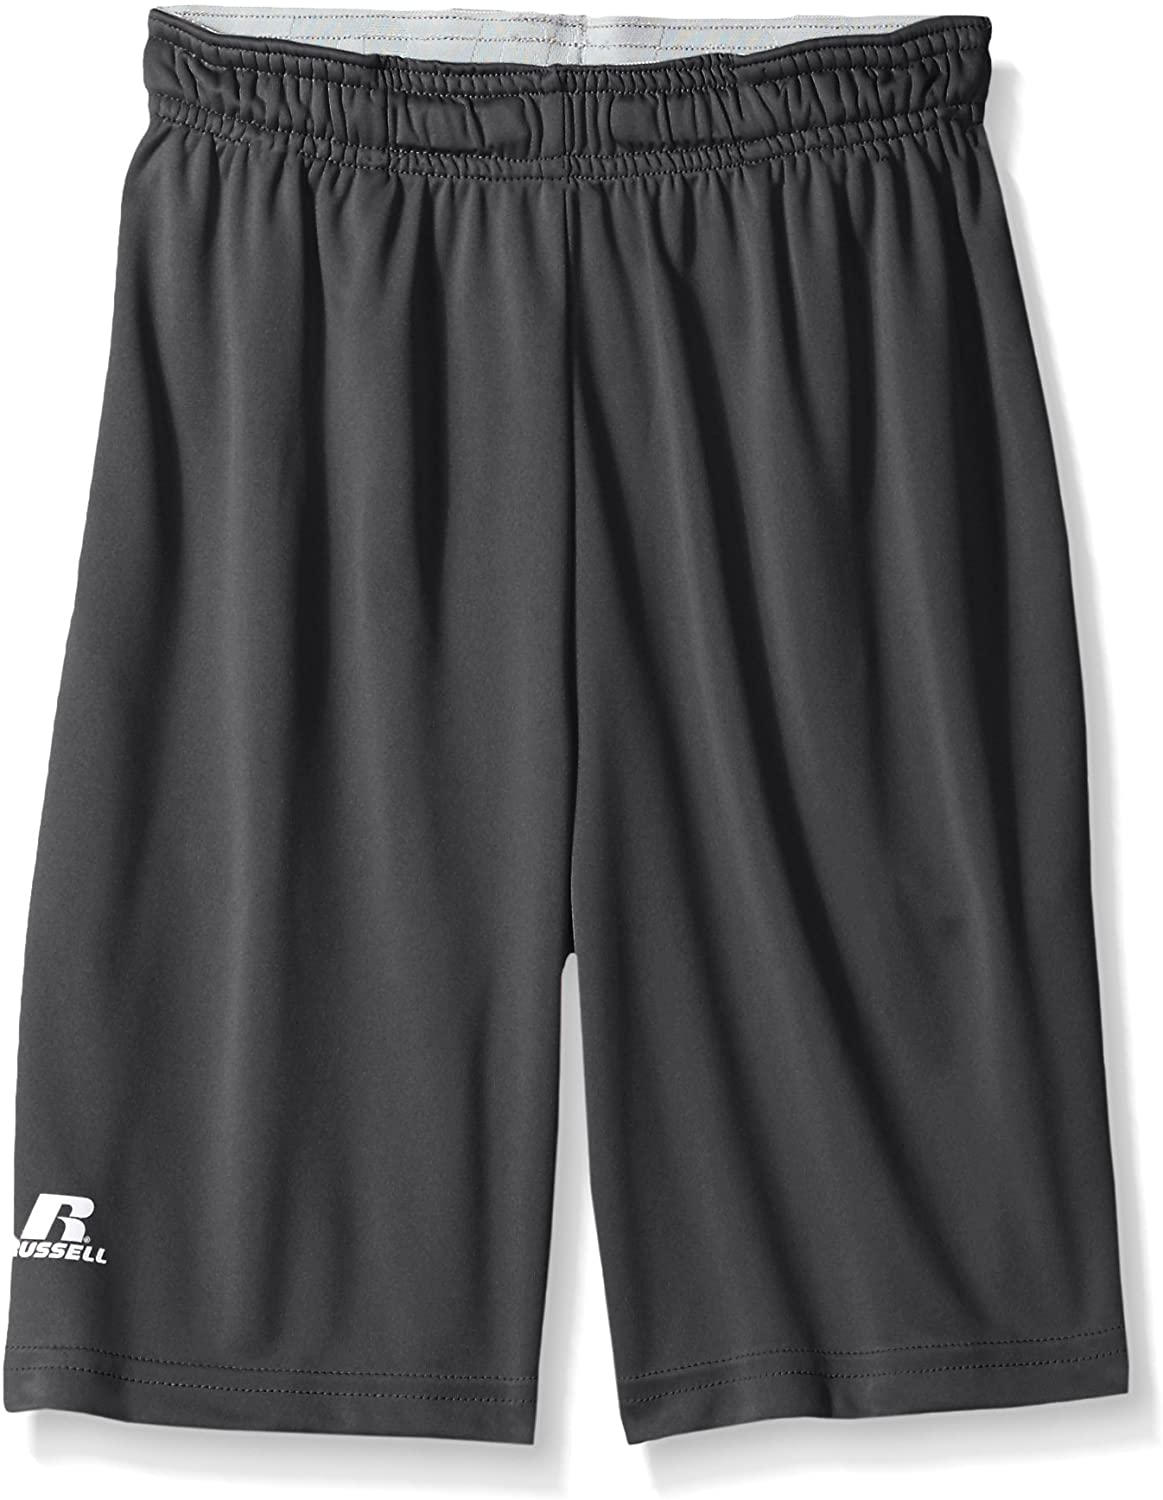 Russell Athletic Boys' Big Dri-Power Performance Short with Pockets